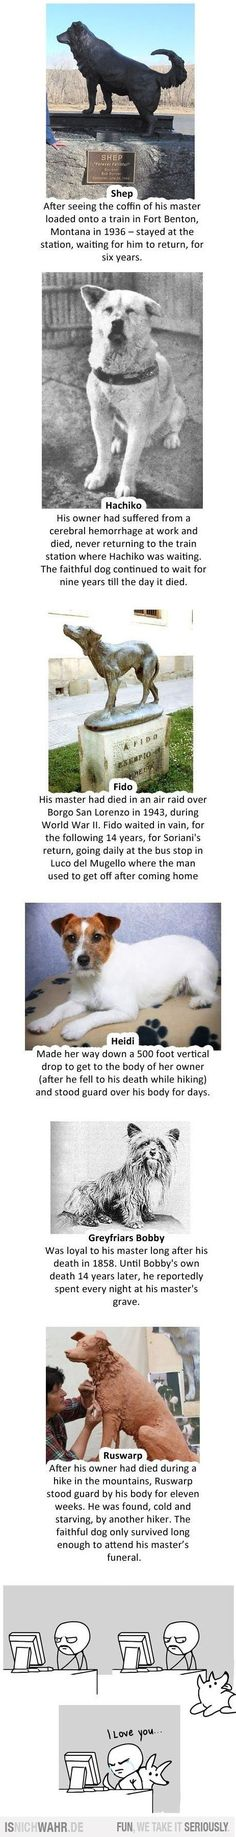 These kind of stories always break my heart, what must they be thinking when their owners don't return? It's so sad. Cuddle your pets <3